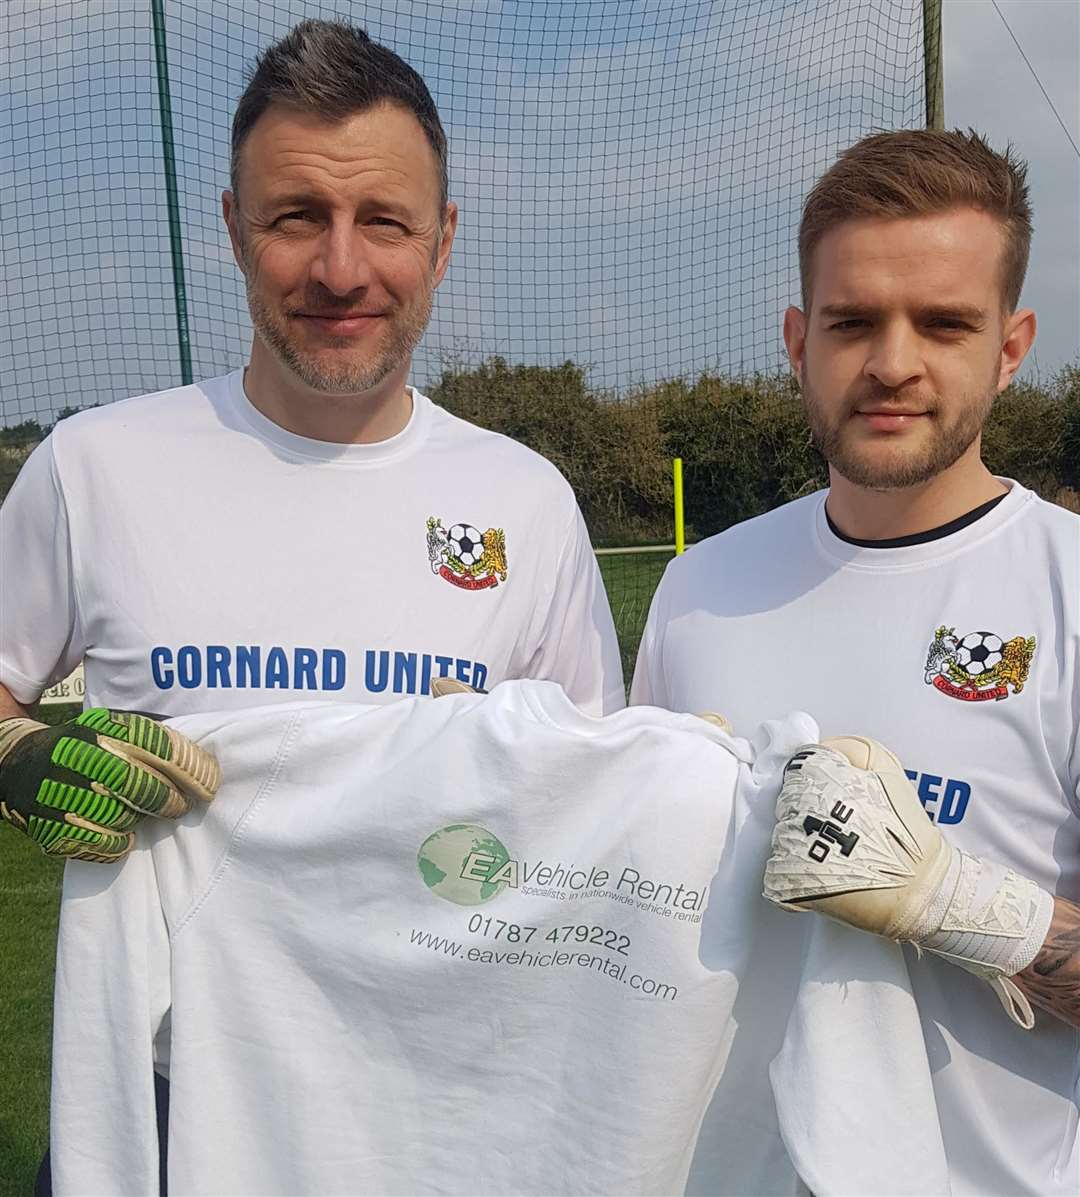 Cornard United goalkeeping coach Colin Athey (left) and goalkeeper and joint-manager Matt Grove with the EA Vehicle Rental training top, after the local company agreed a sponsorship deal with the club ahead of their Suffolk Senior Cup semi-final (9934840)